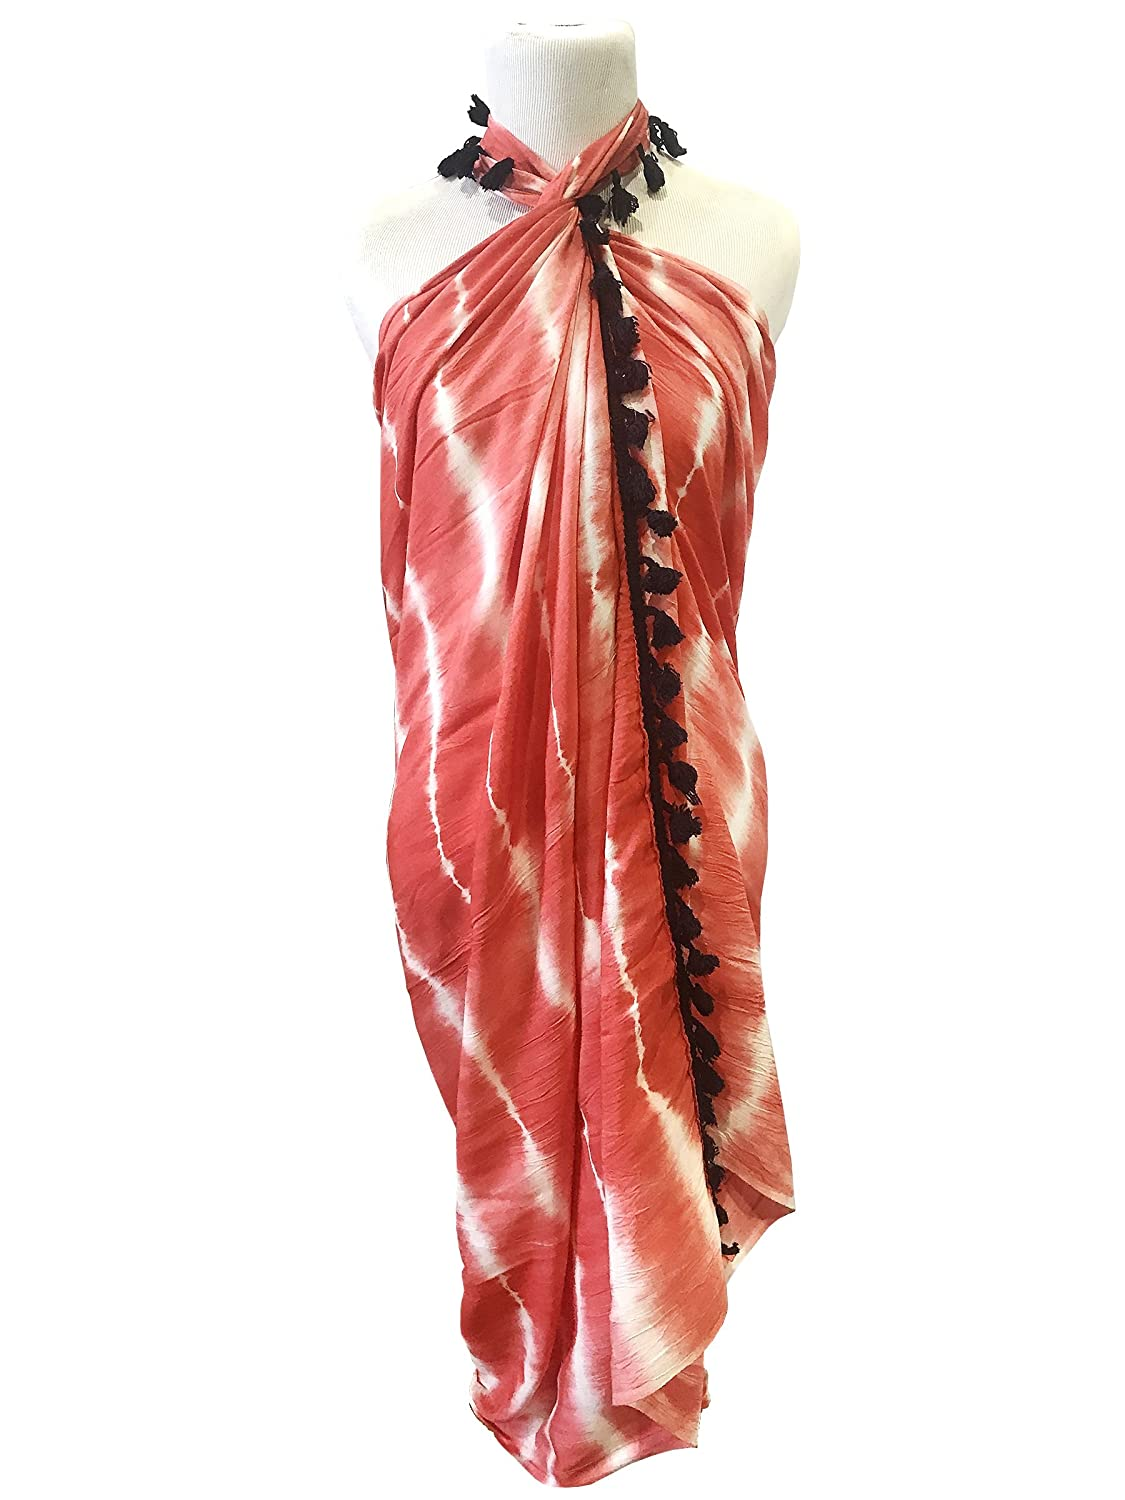 33e015dacf701 Chilly Jilly Sarongs Womens Tie-Dye Swimsuit Wrap Pareo Bikini Cover up  with Tassels - Coral at Amazon Women's Clothing store: